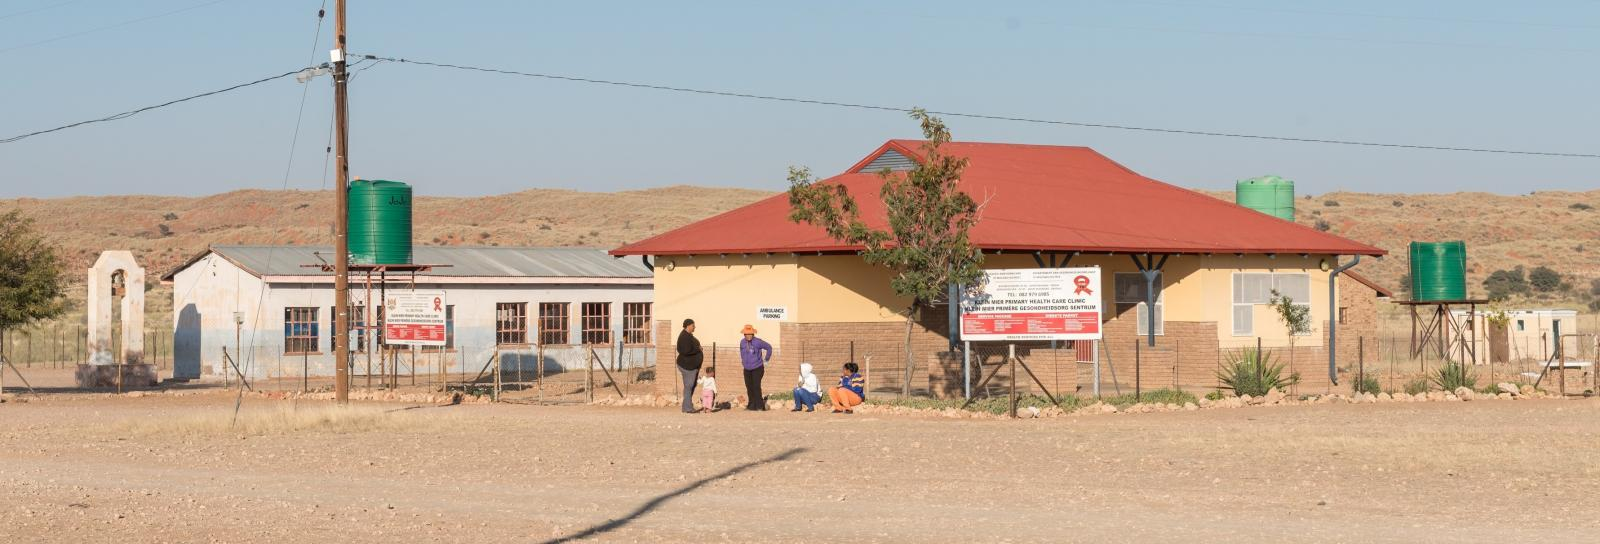 South African medical clinic